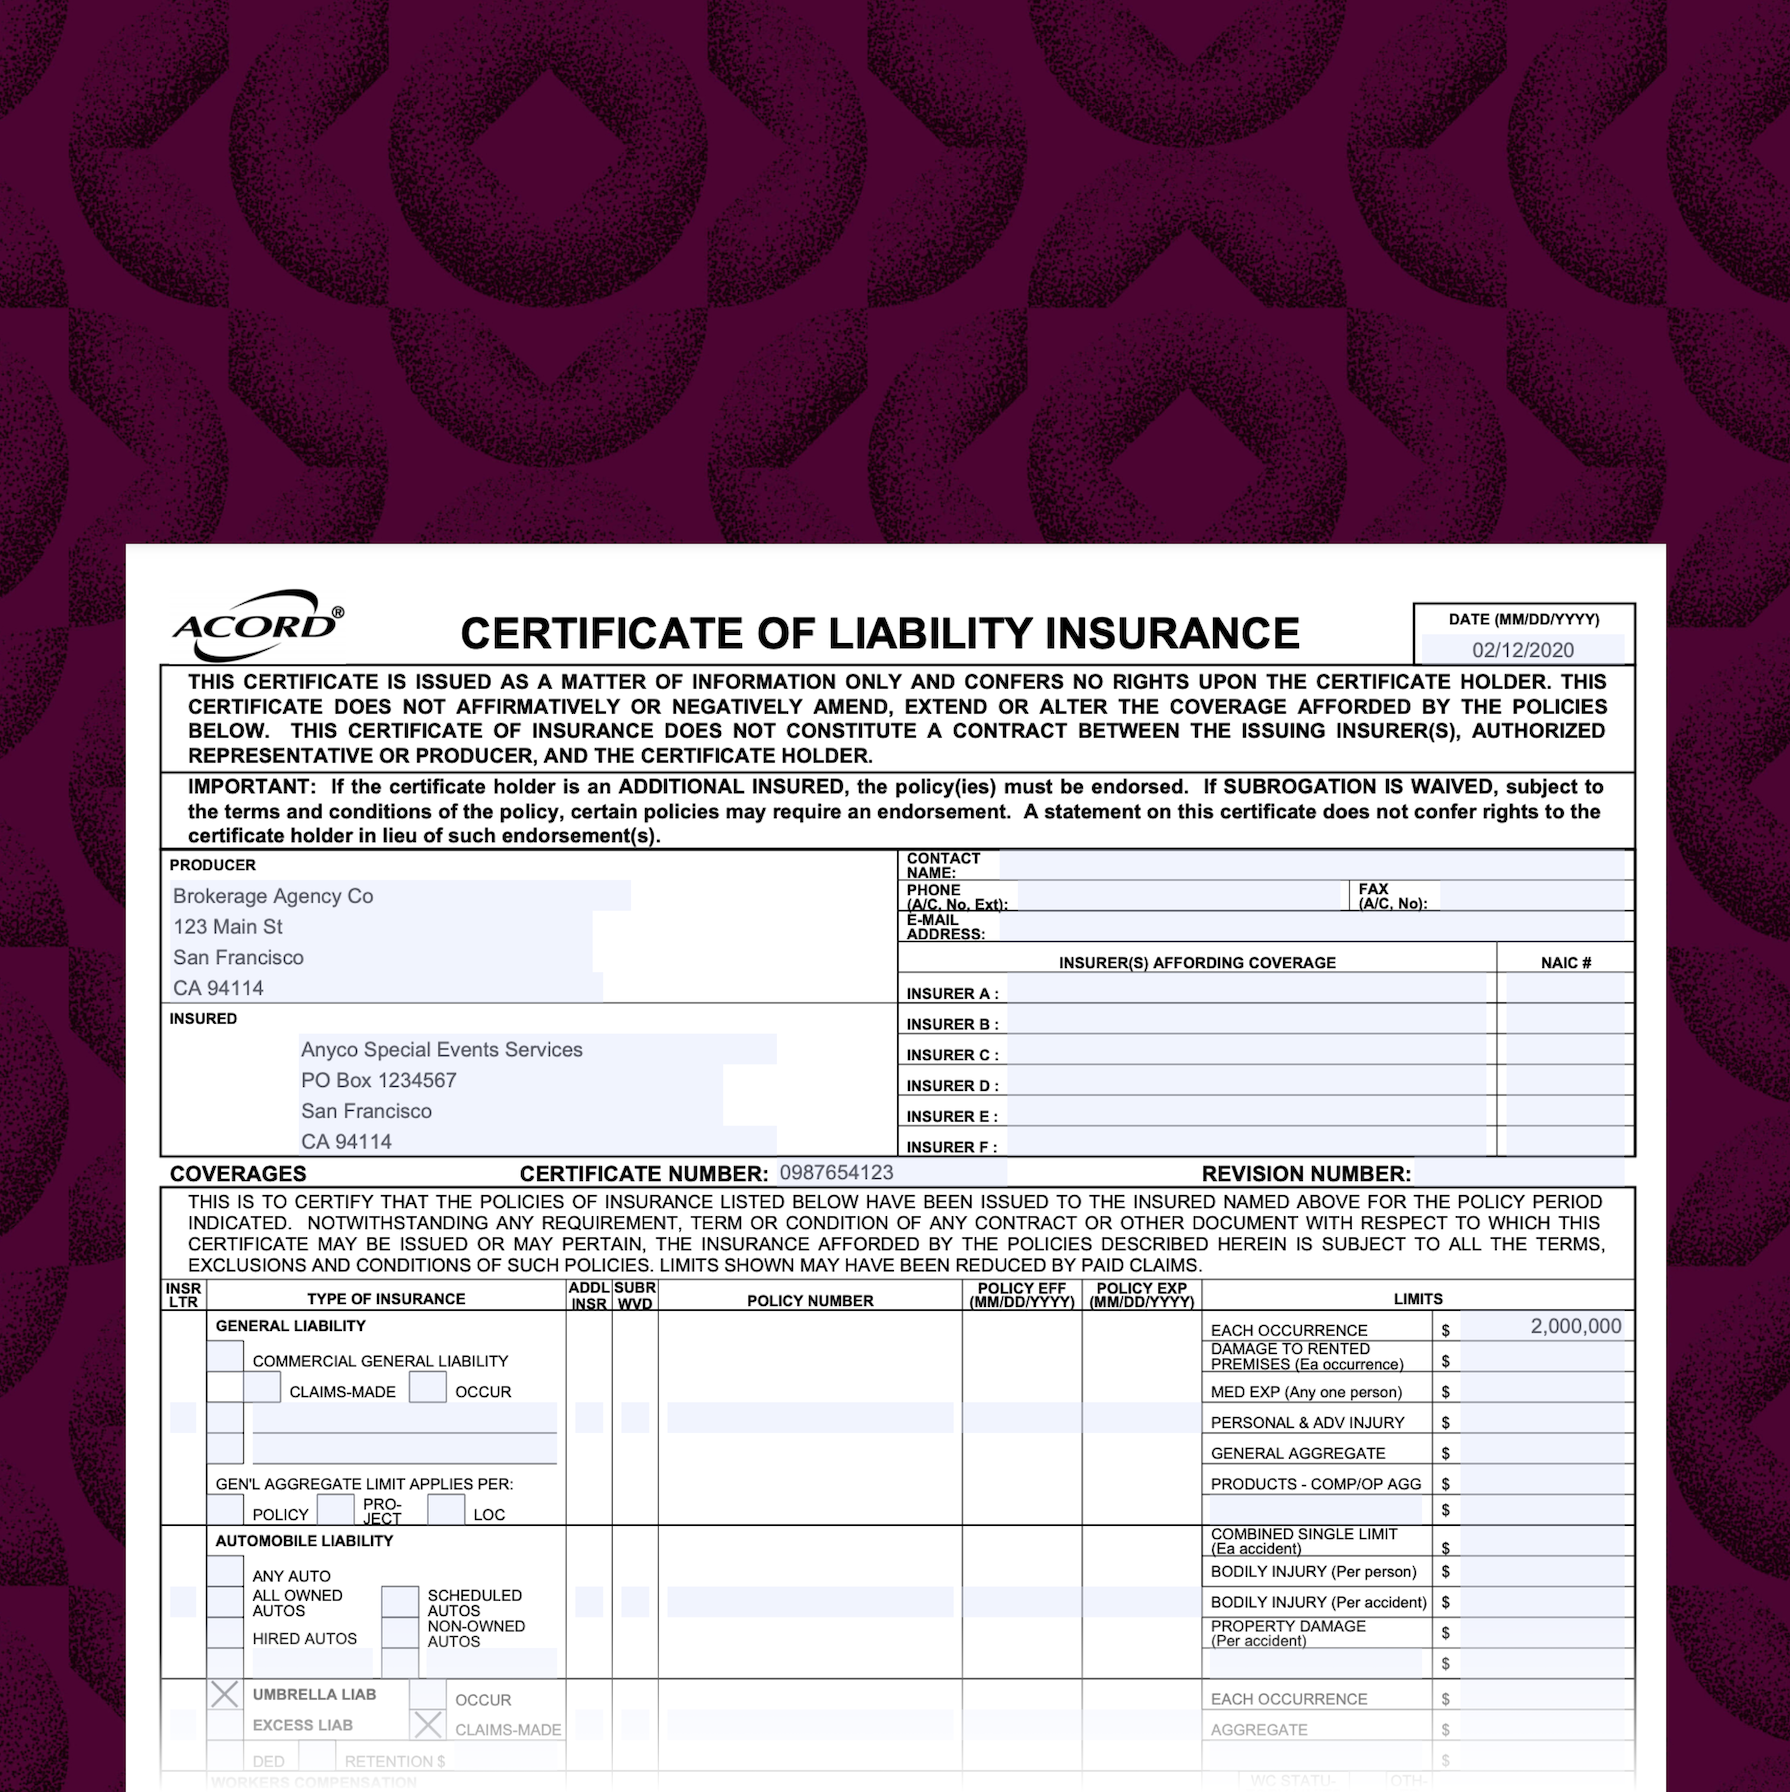 Extracting data from certificates of insurance